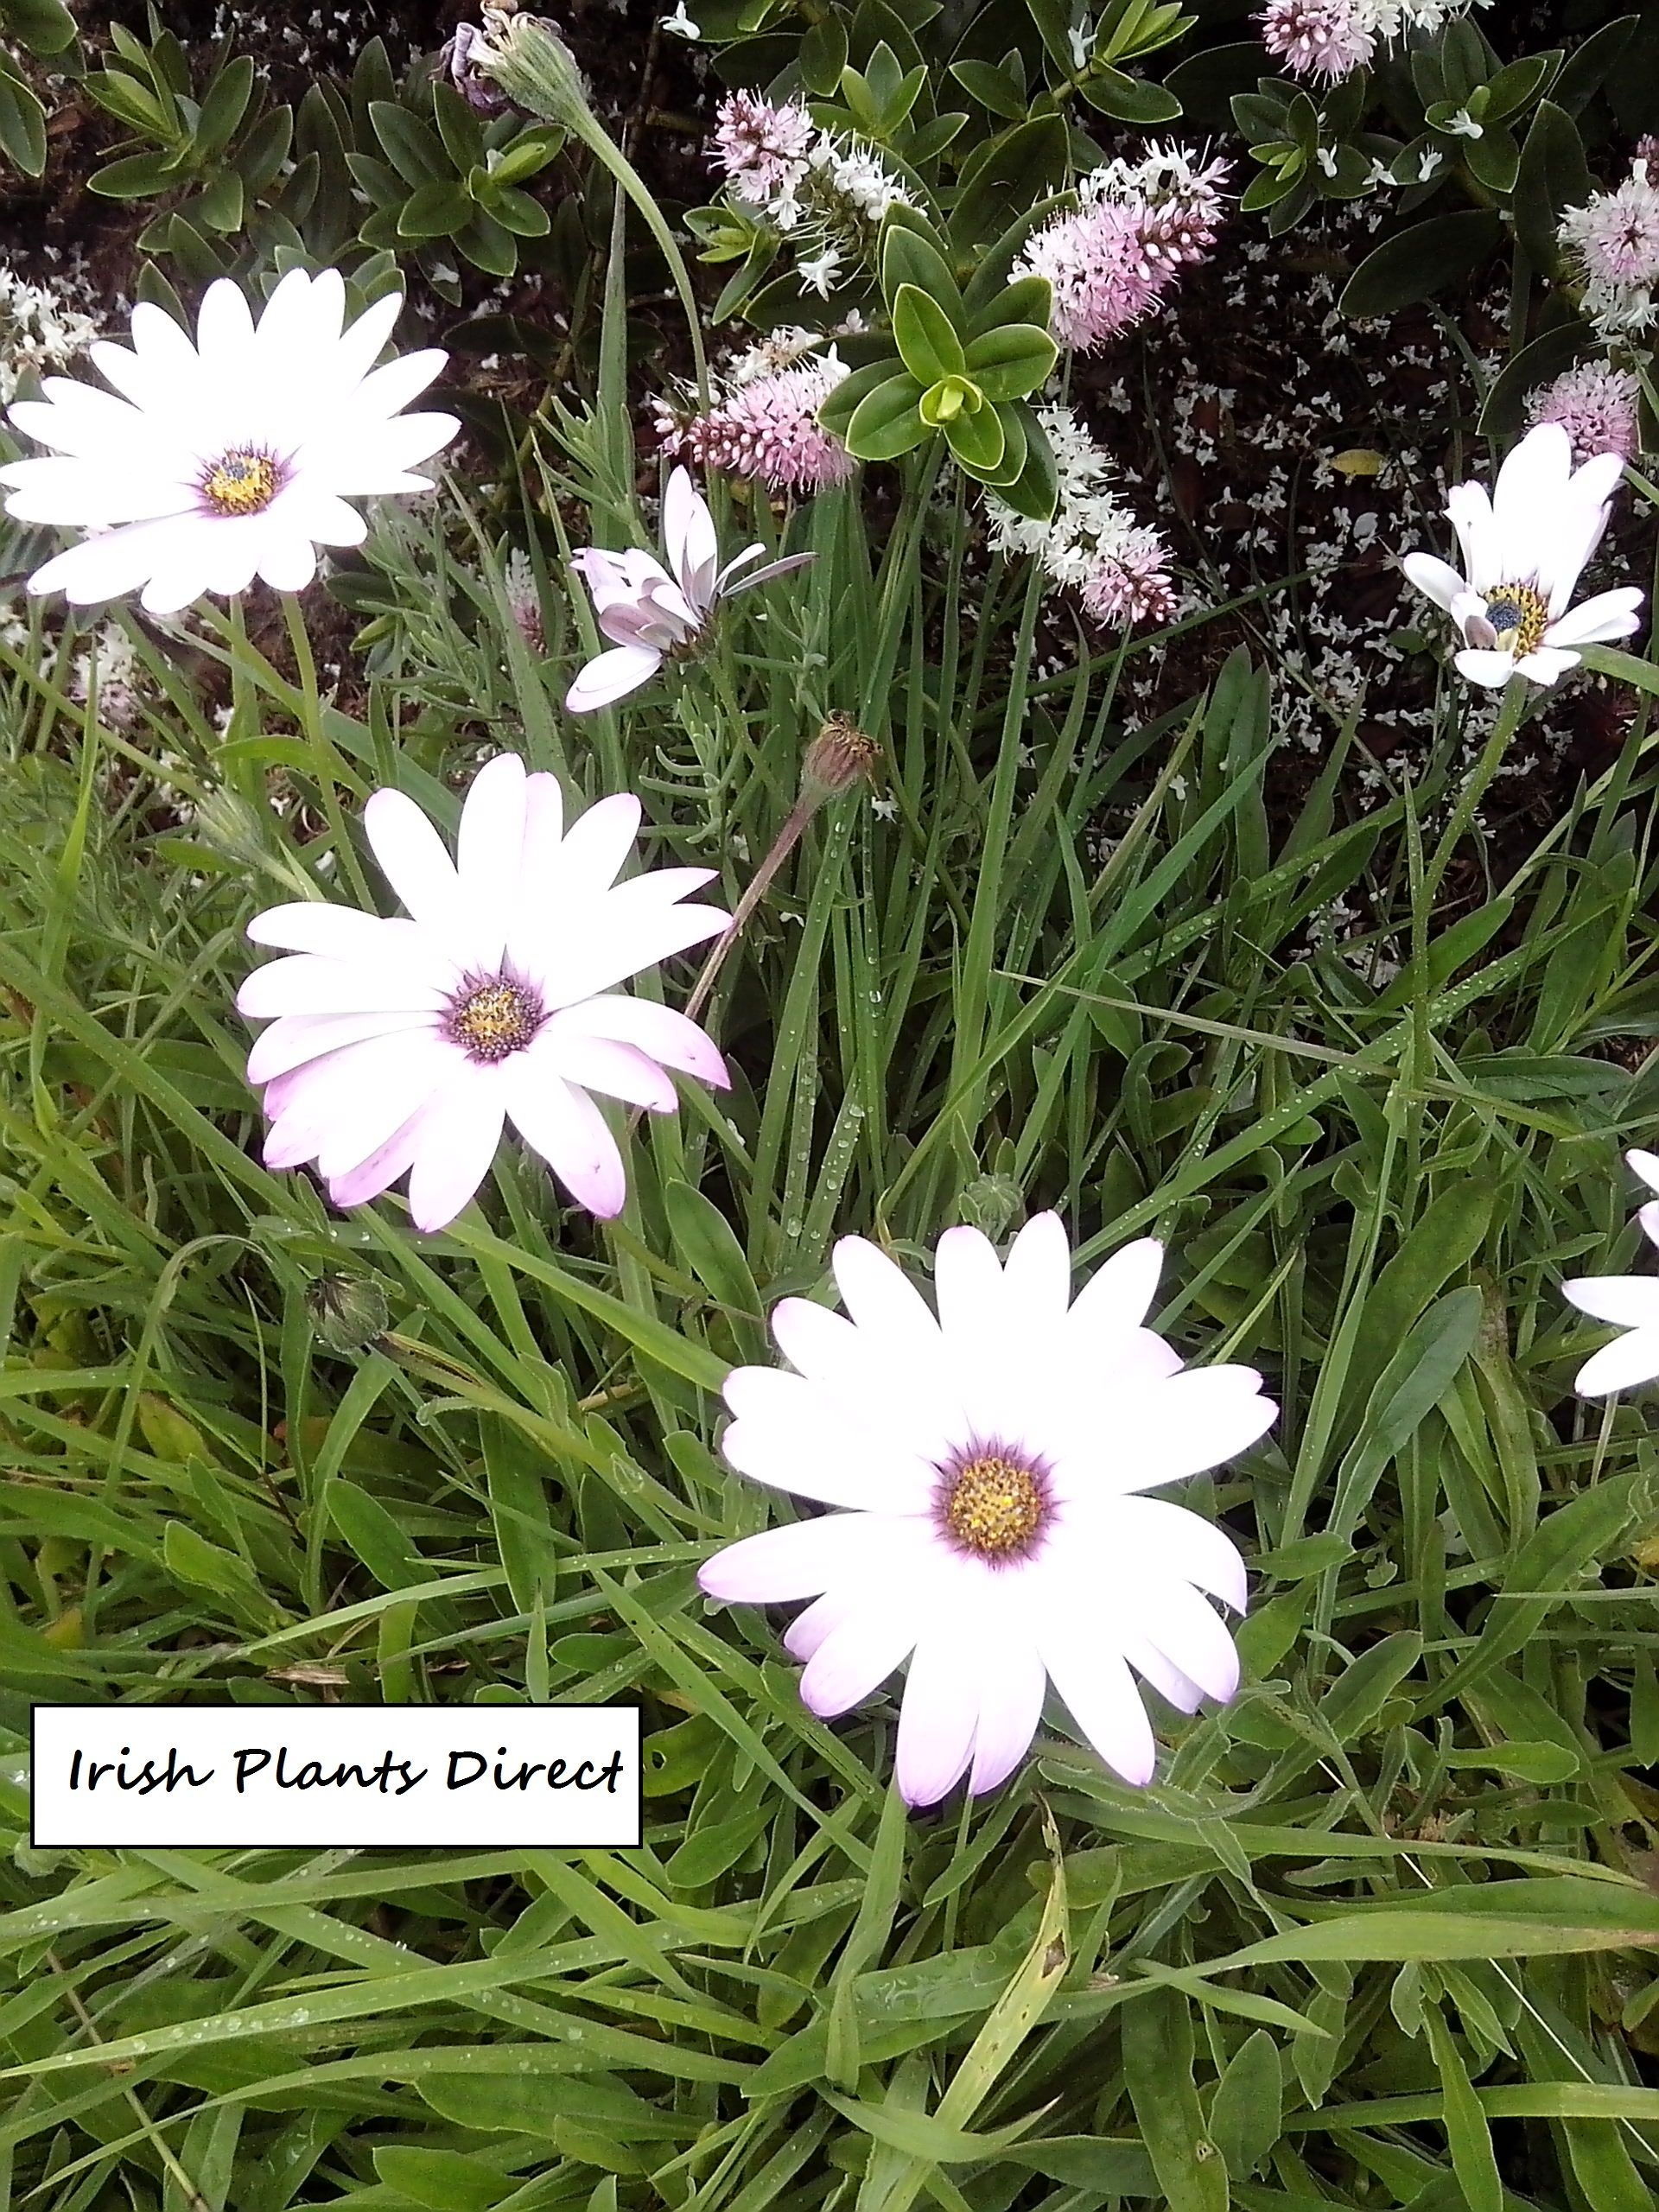 Osteospermum Lady Leitrim The Wonderful Daisy Like Flowers Have